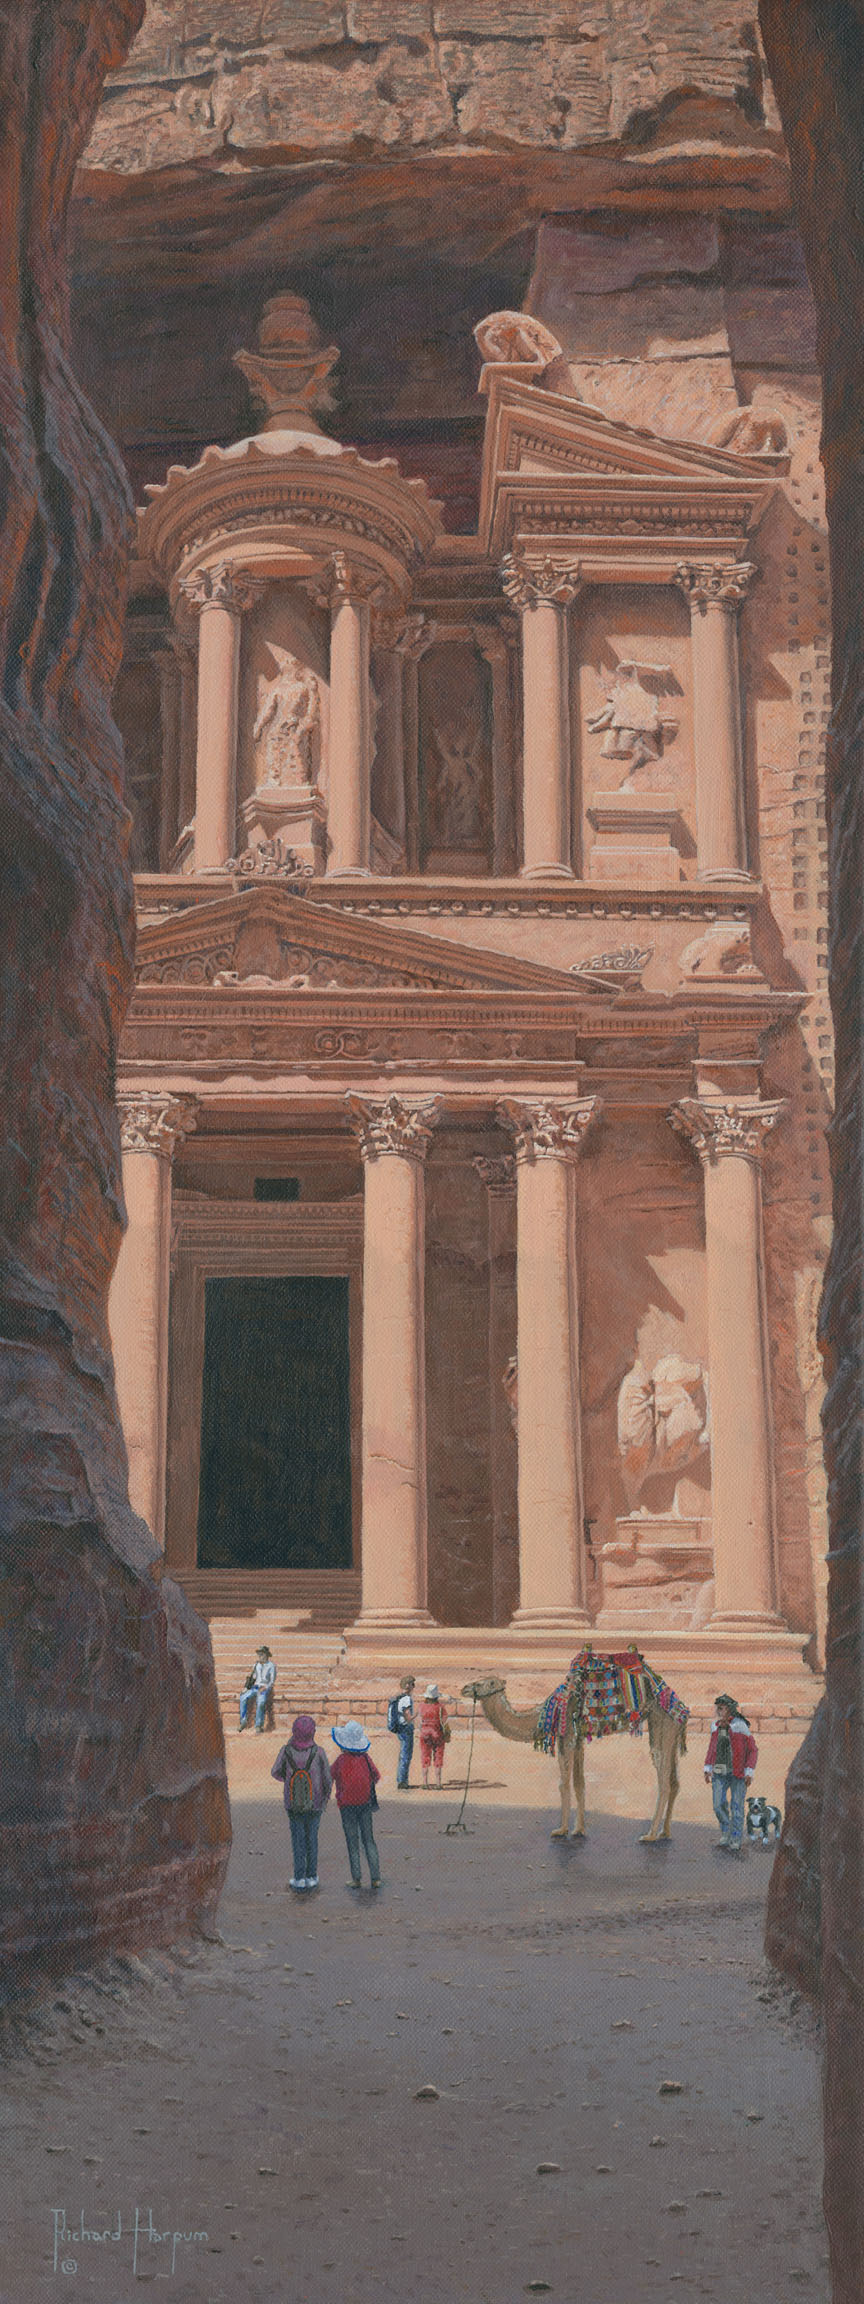 Painting - The Treasury, Petra, Jordan